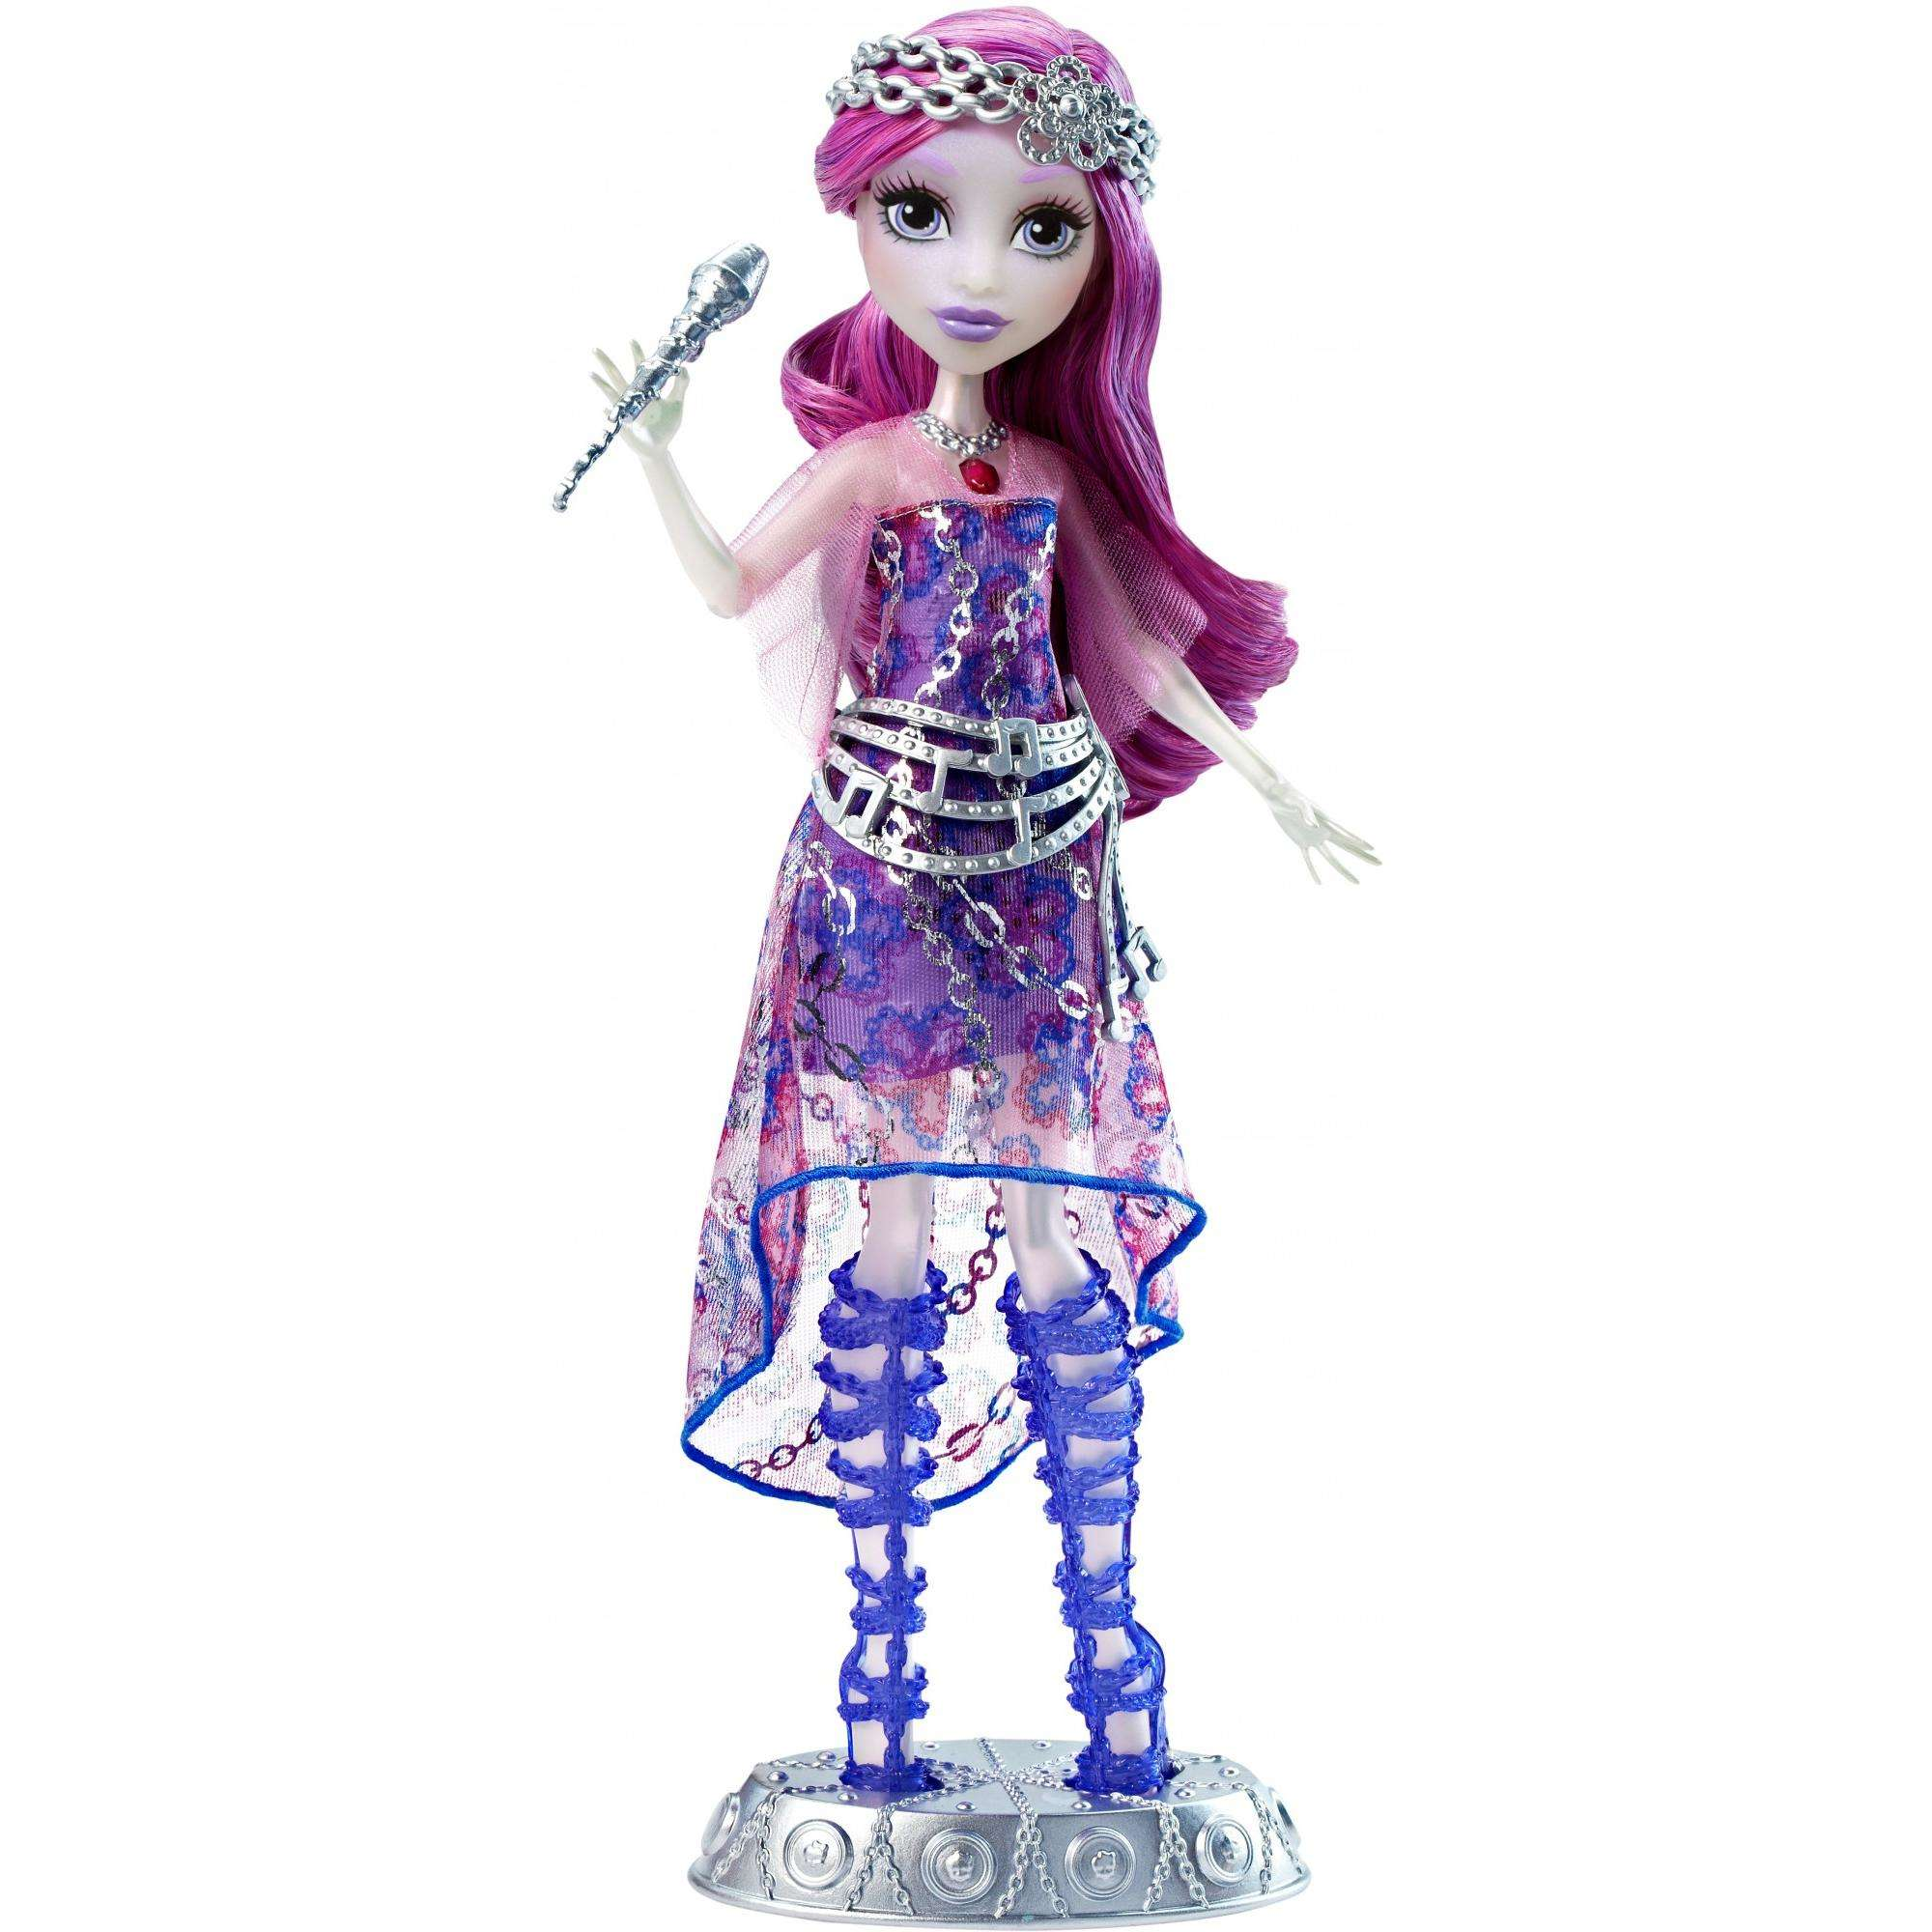 Monster High Welcome To Monster High Singing Popstar Ari Hauntington Doll